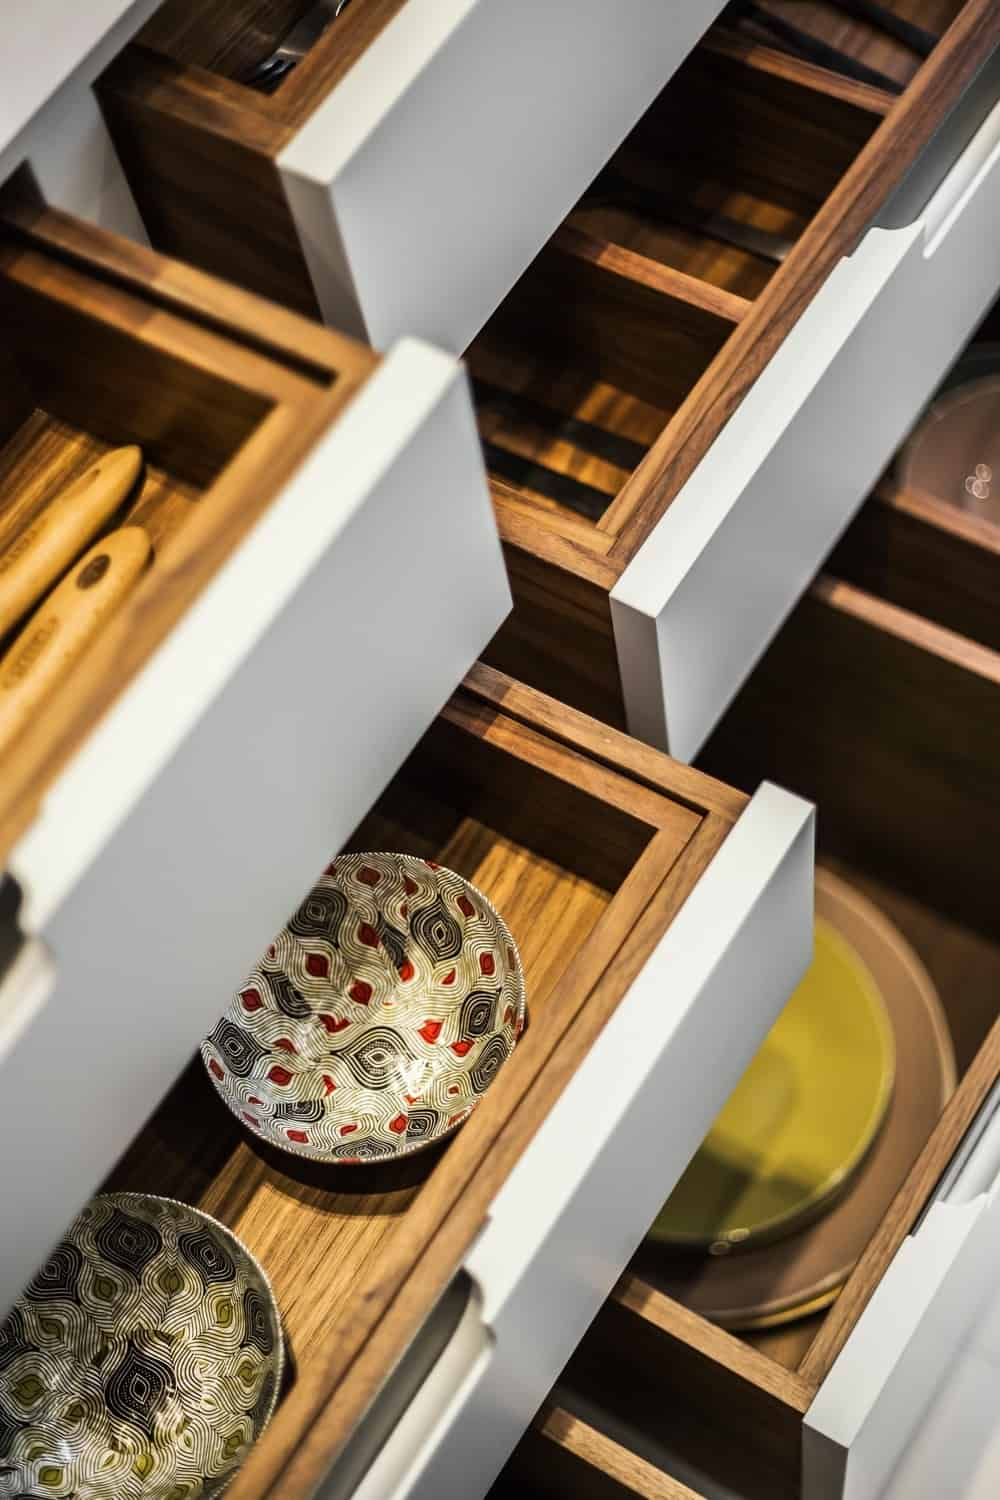 A close up look of the kitchen's multiple drawer storage. Photo Credit: Rick Mccullagh